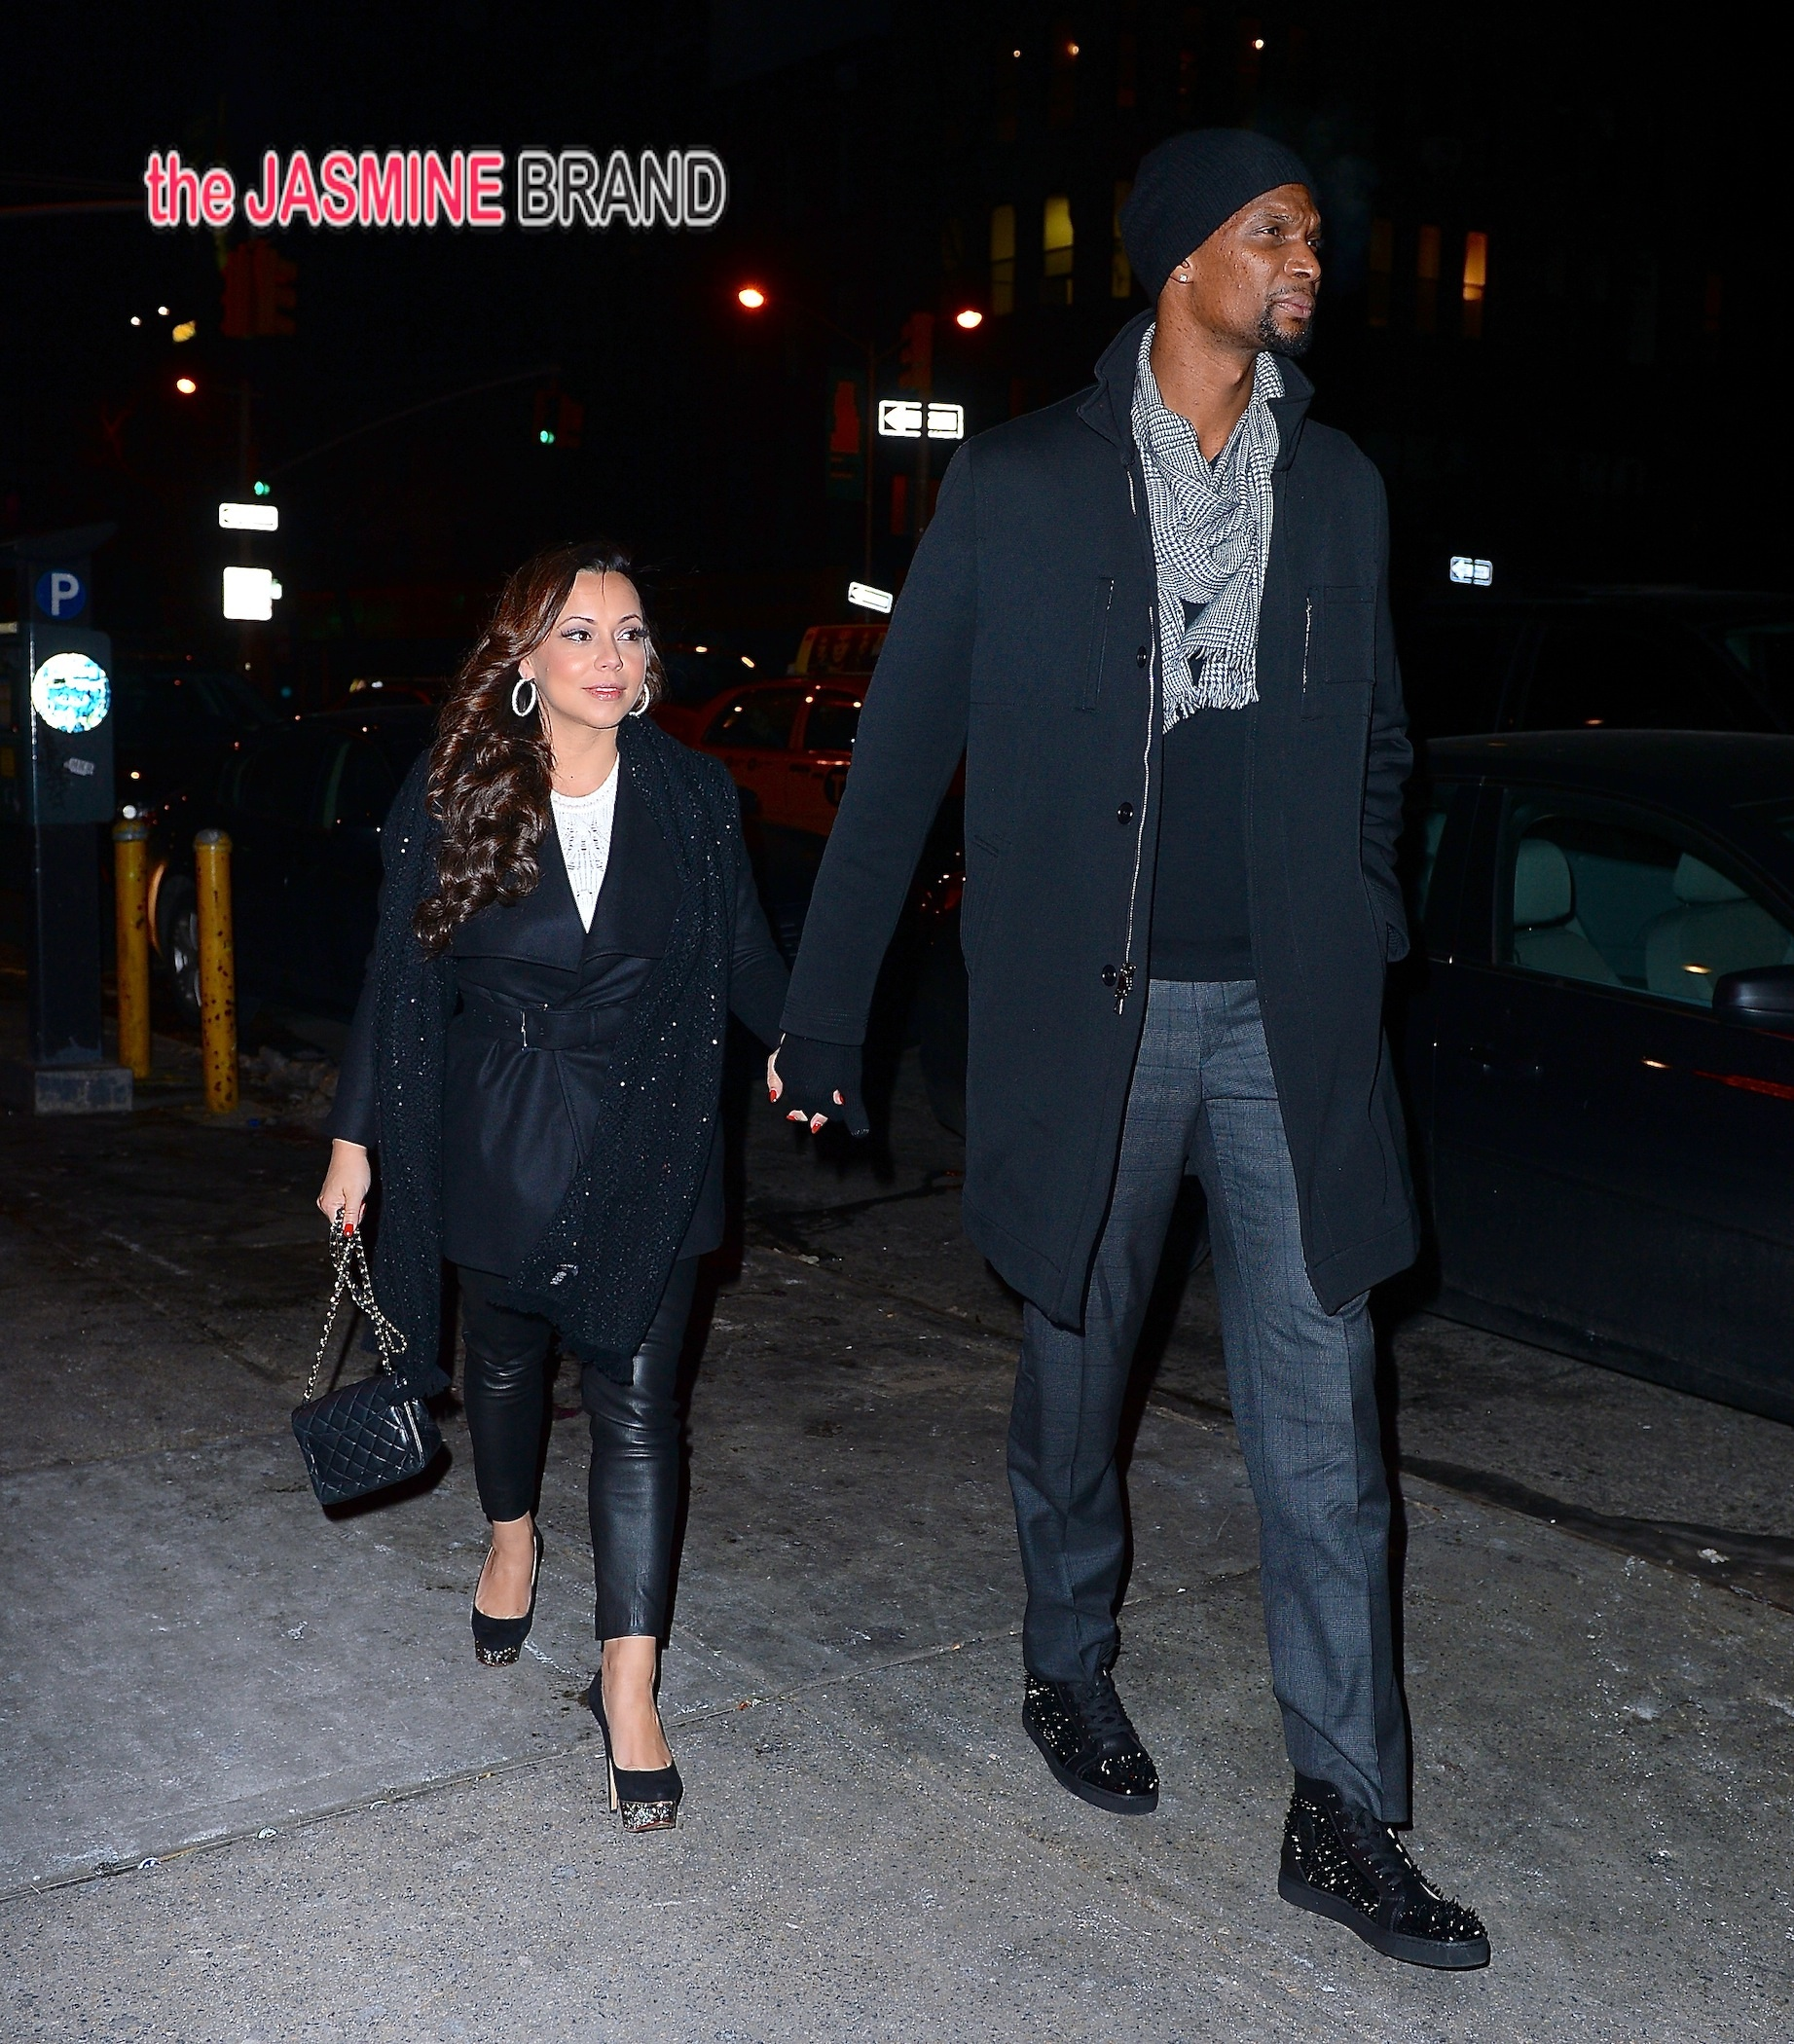 Miami Heat players including Lebron James take their ladies out for dinner in NYC, but Gabrielle Union is missing